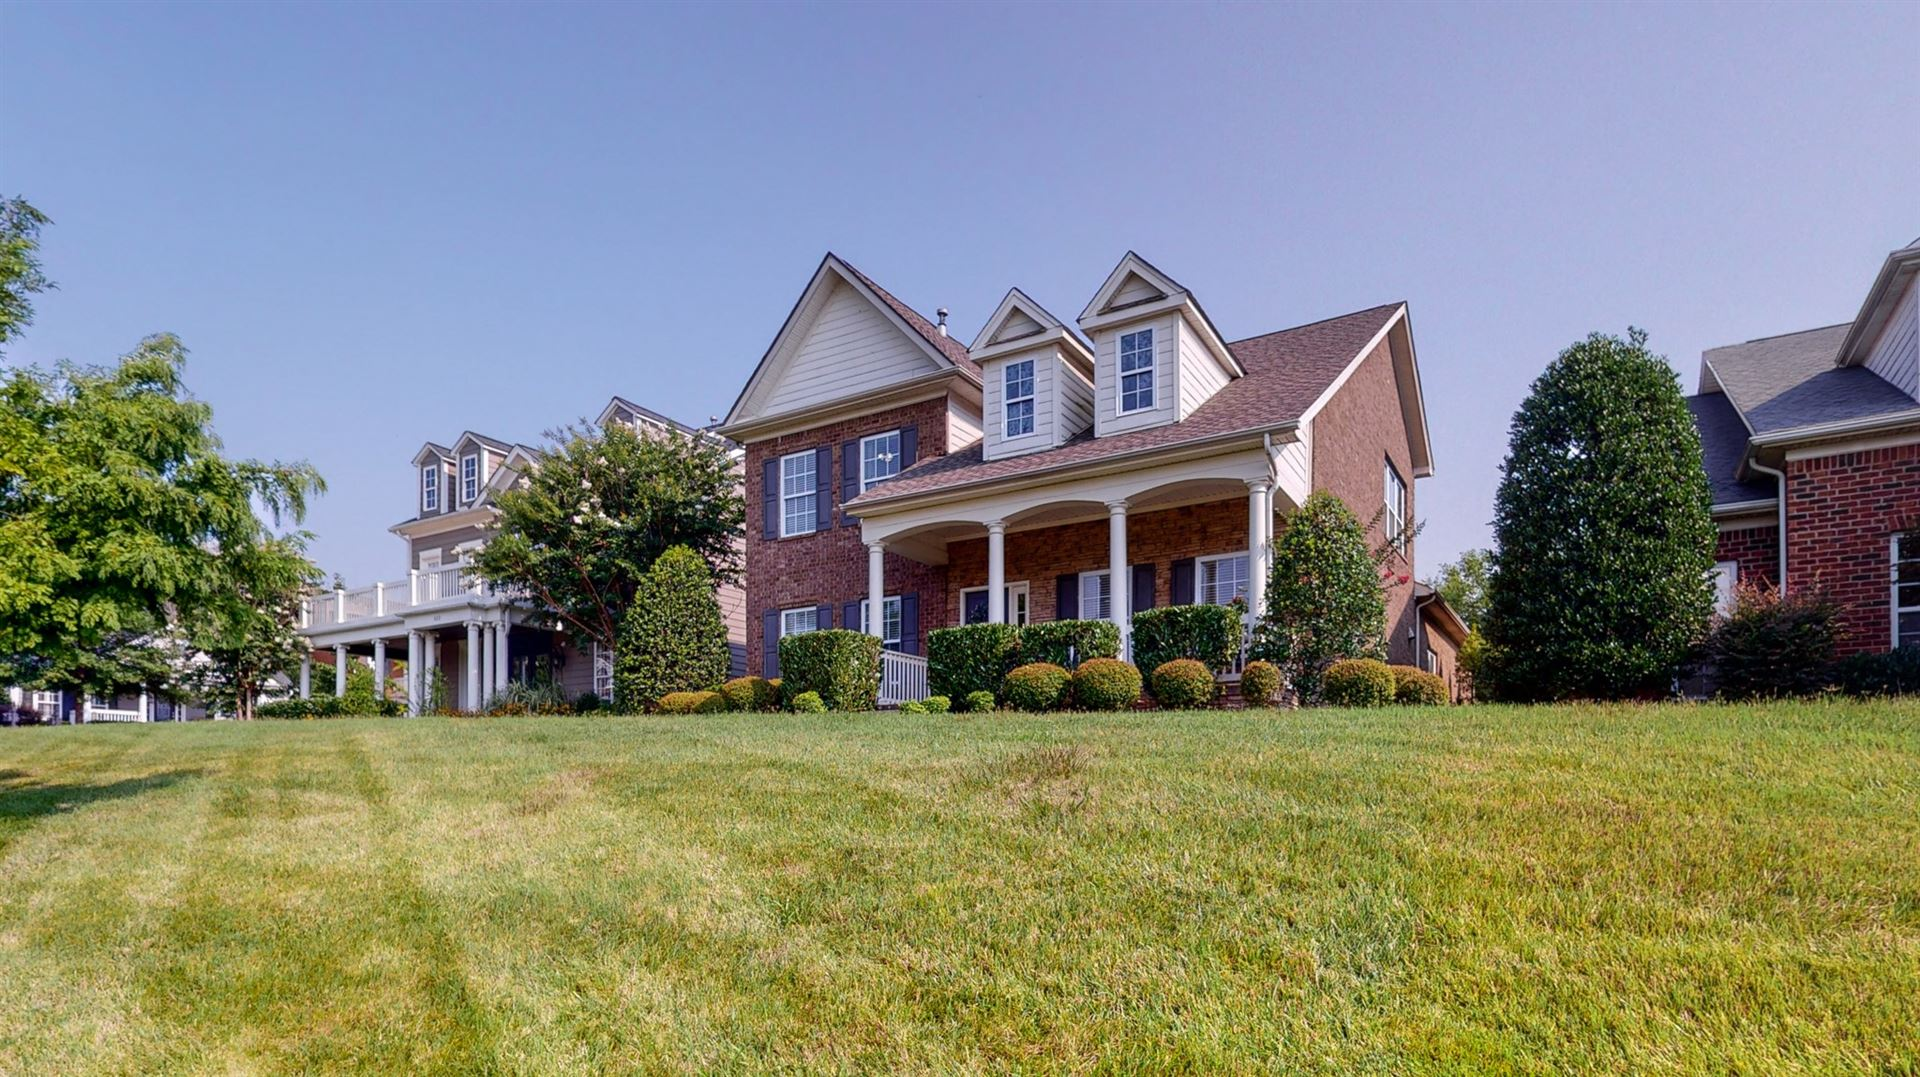 Photo of 524 Pennystone Dr, Franklin, TN 37067 (MLS # 2274907)